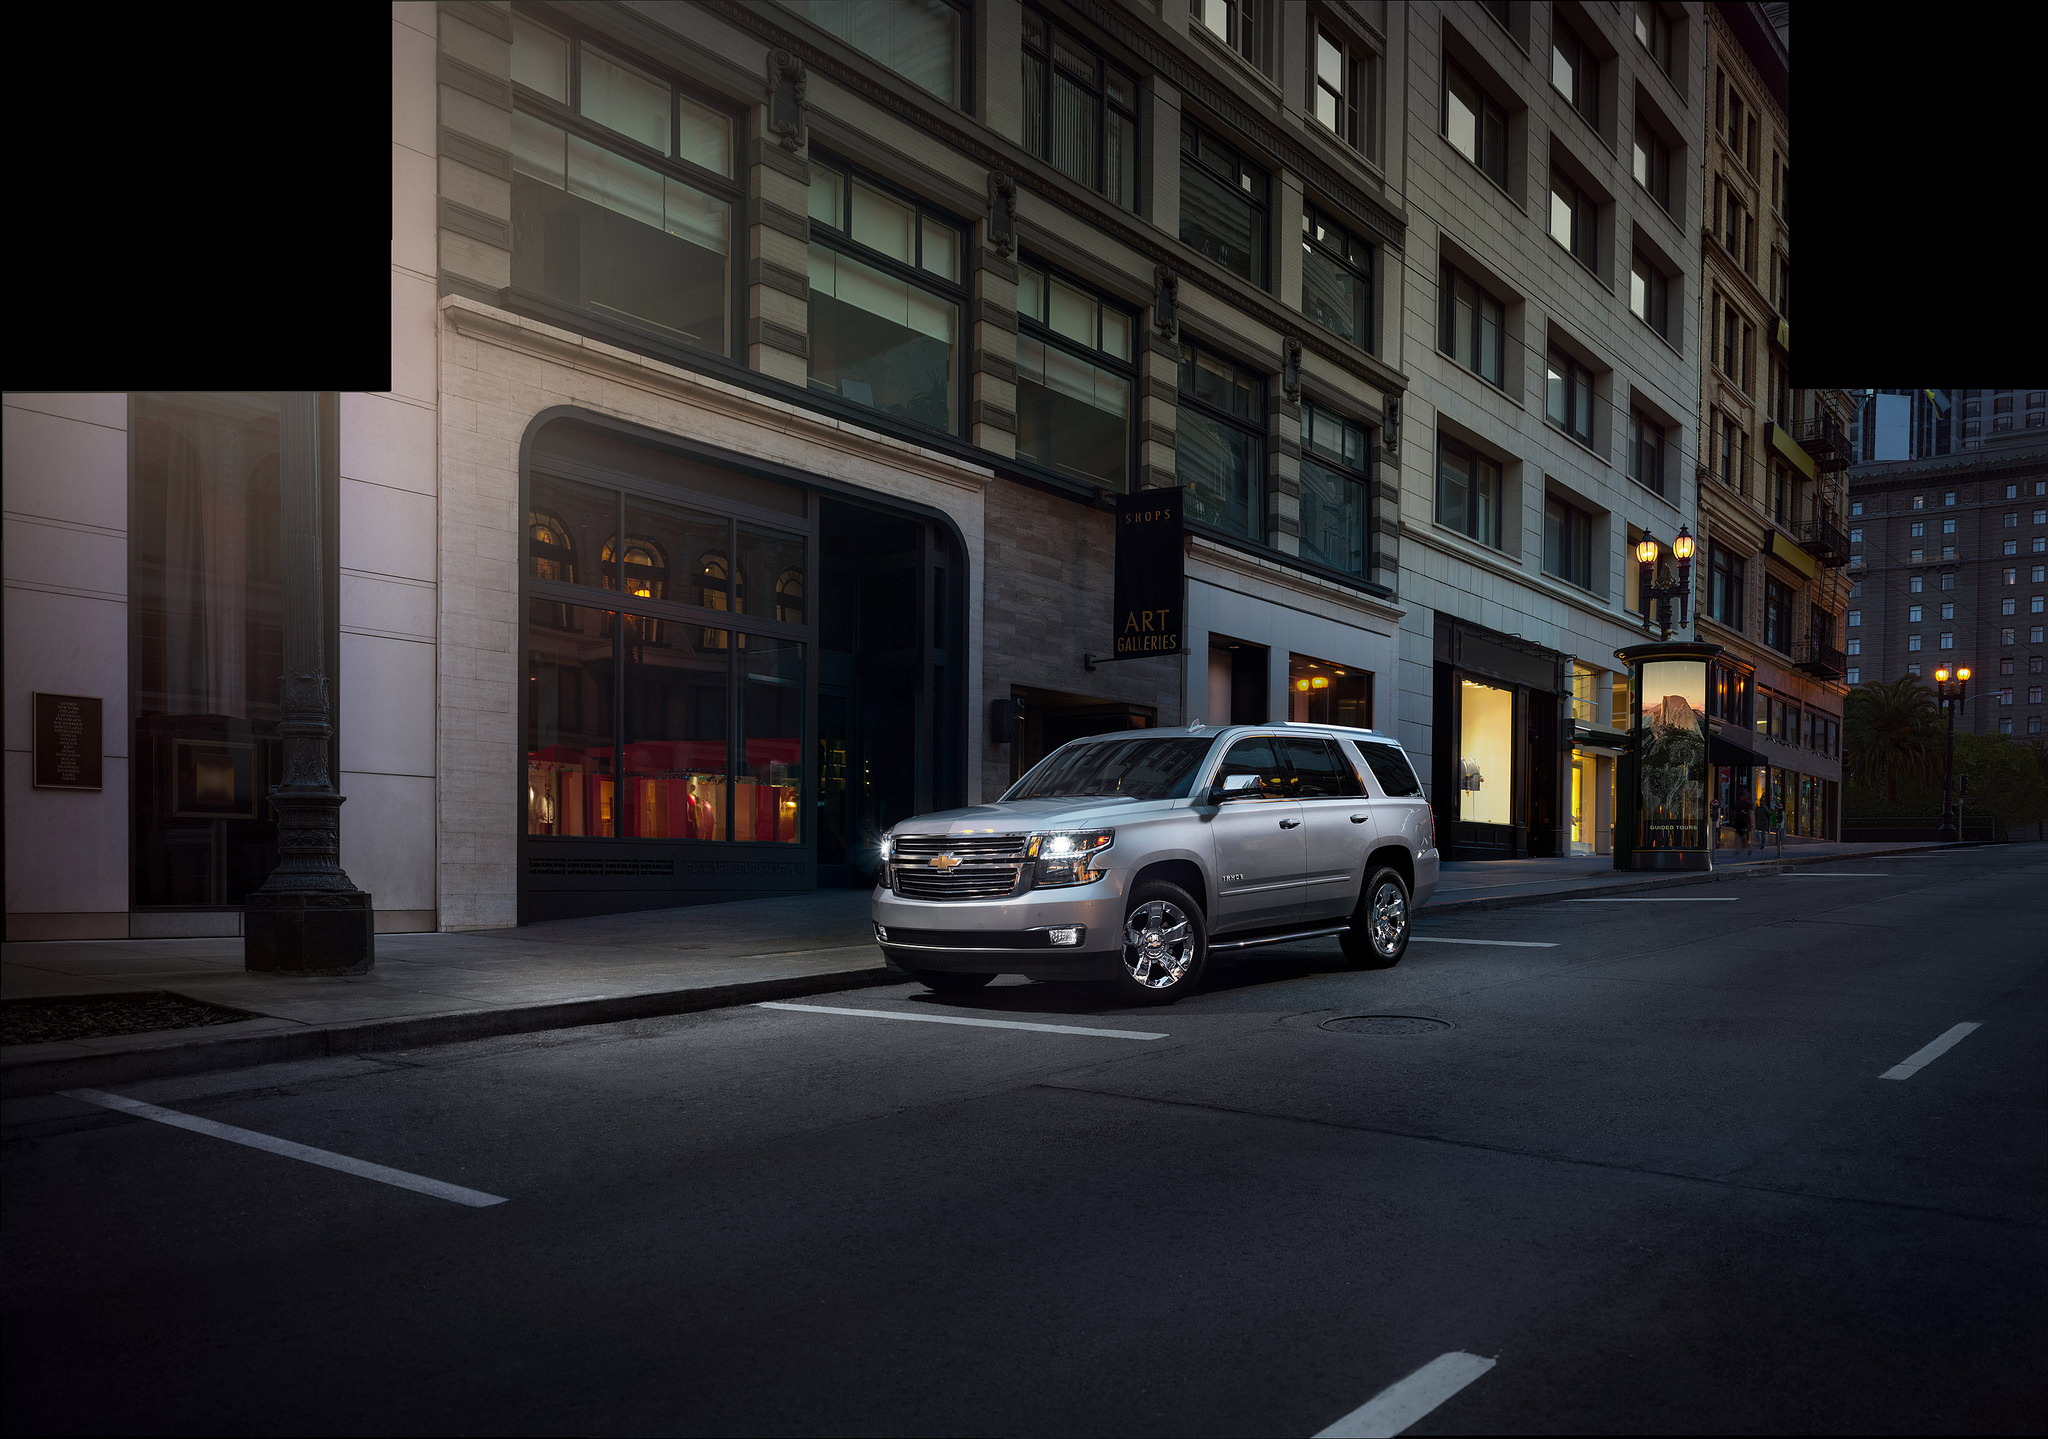 2020 Chevy Tahoe Gets Subtle Modifications The News Wheel